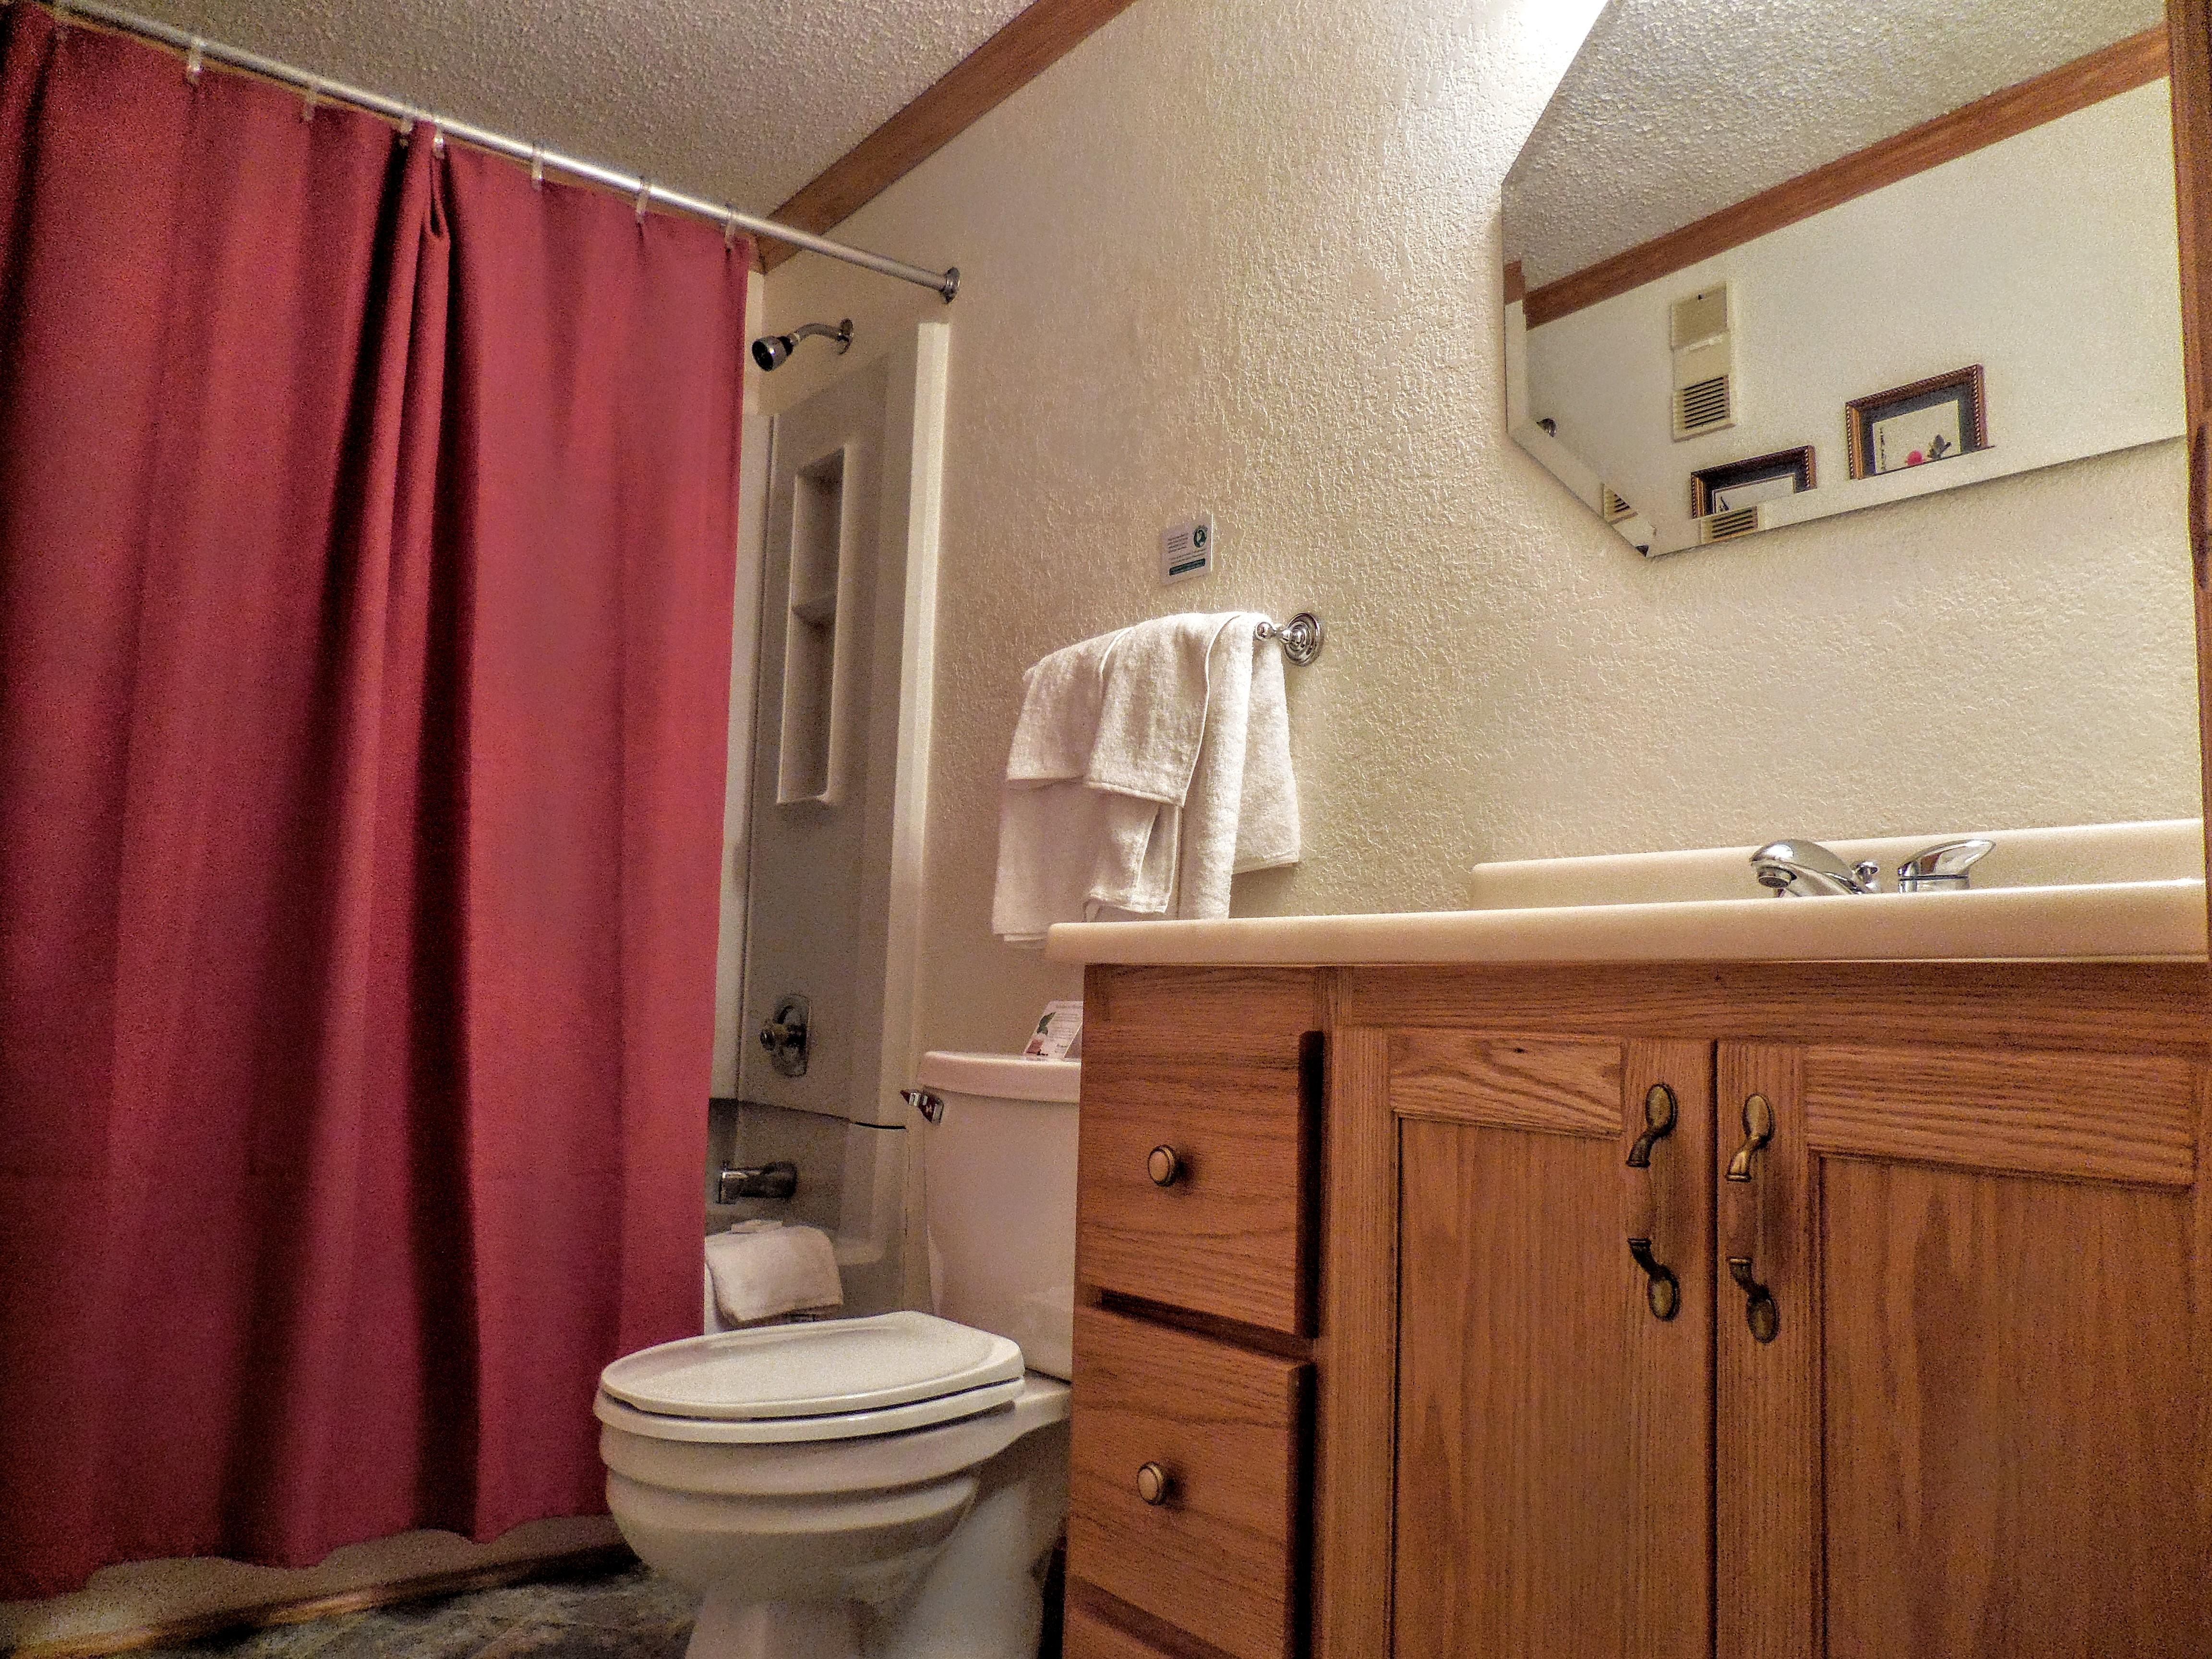 Enlarged bathroom provides more room and comfort